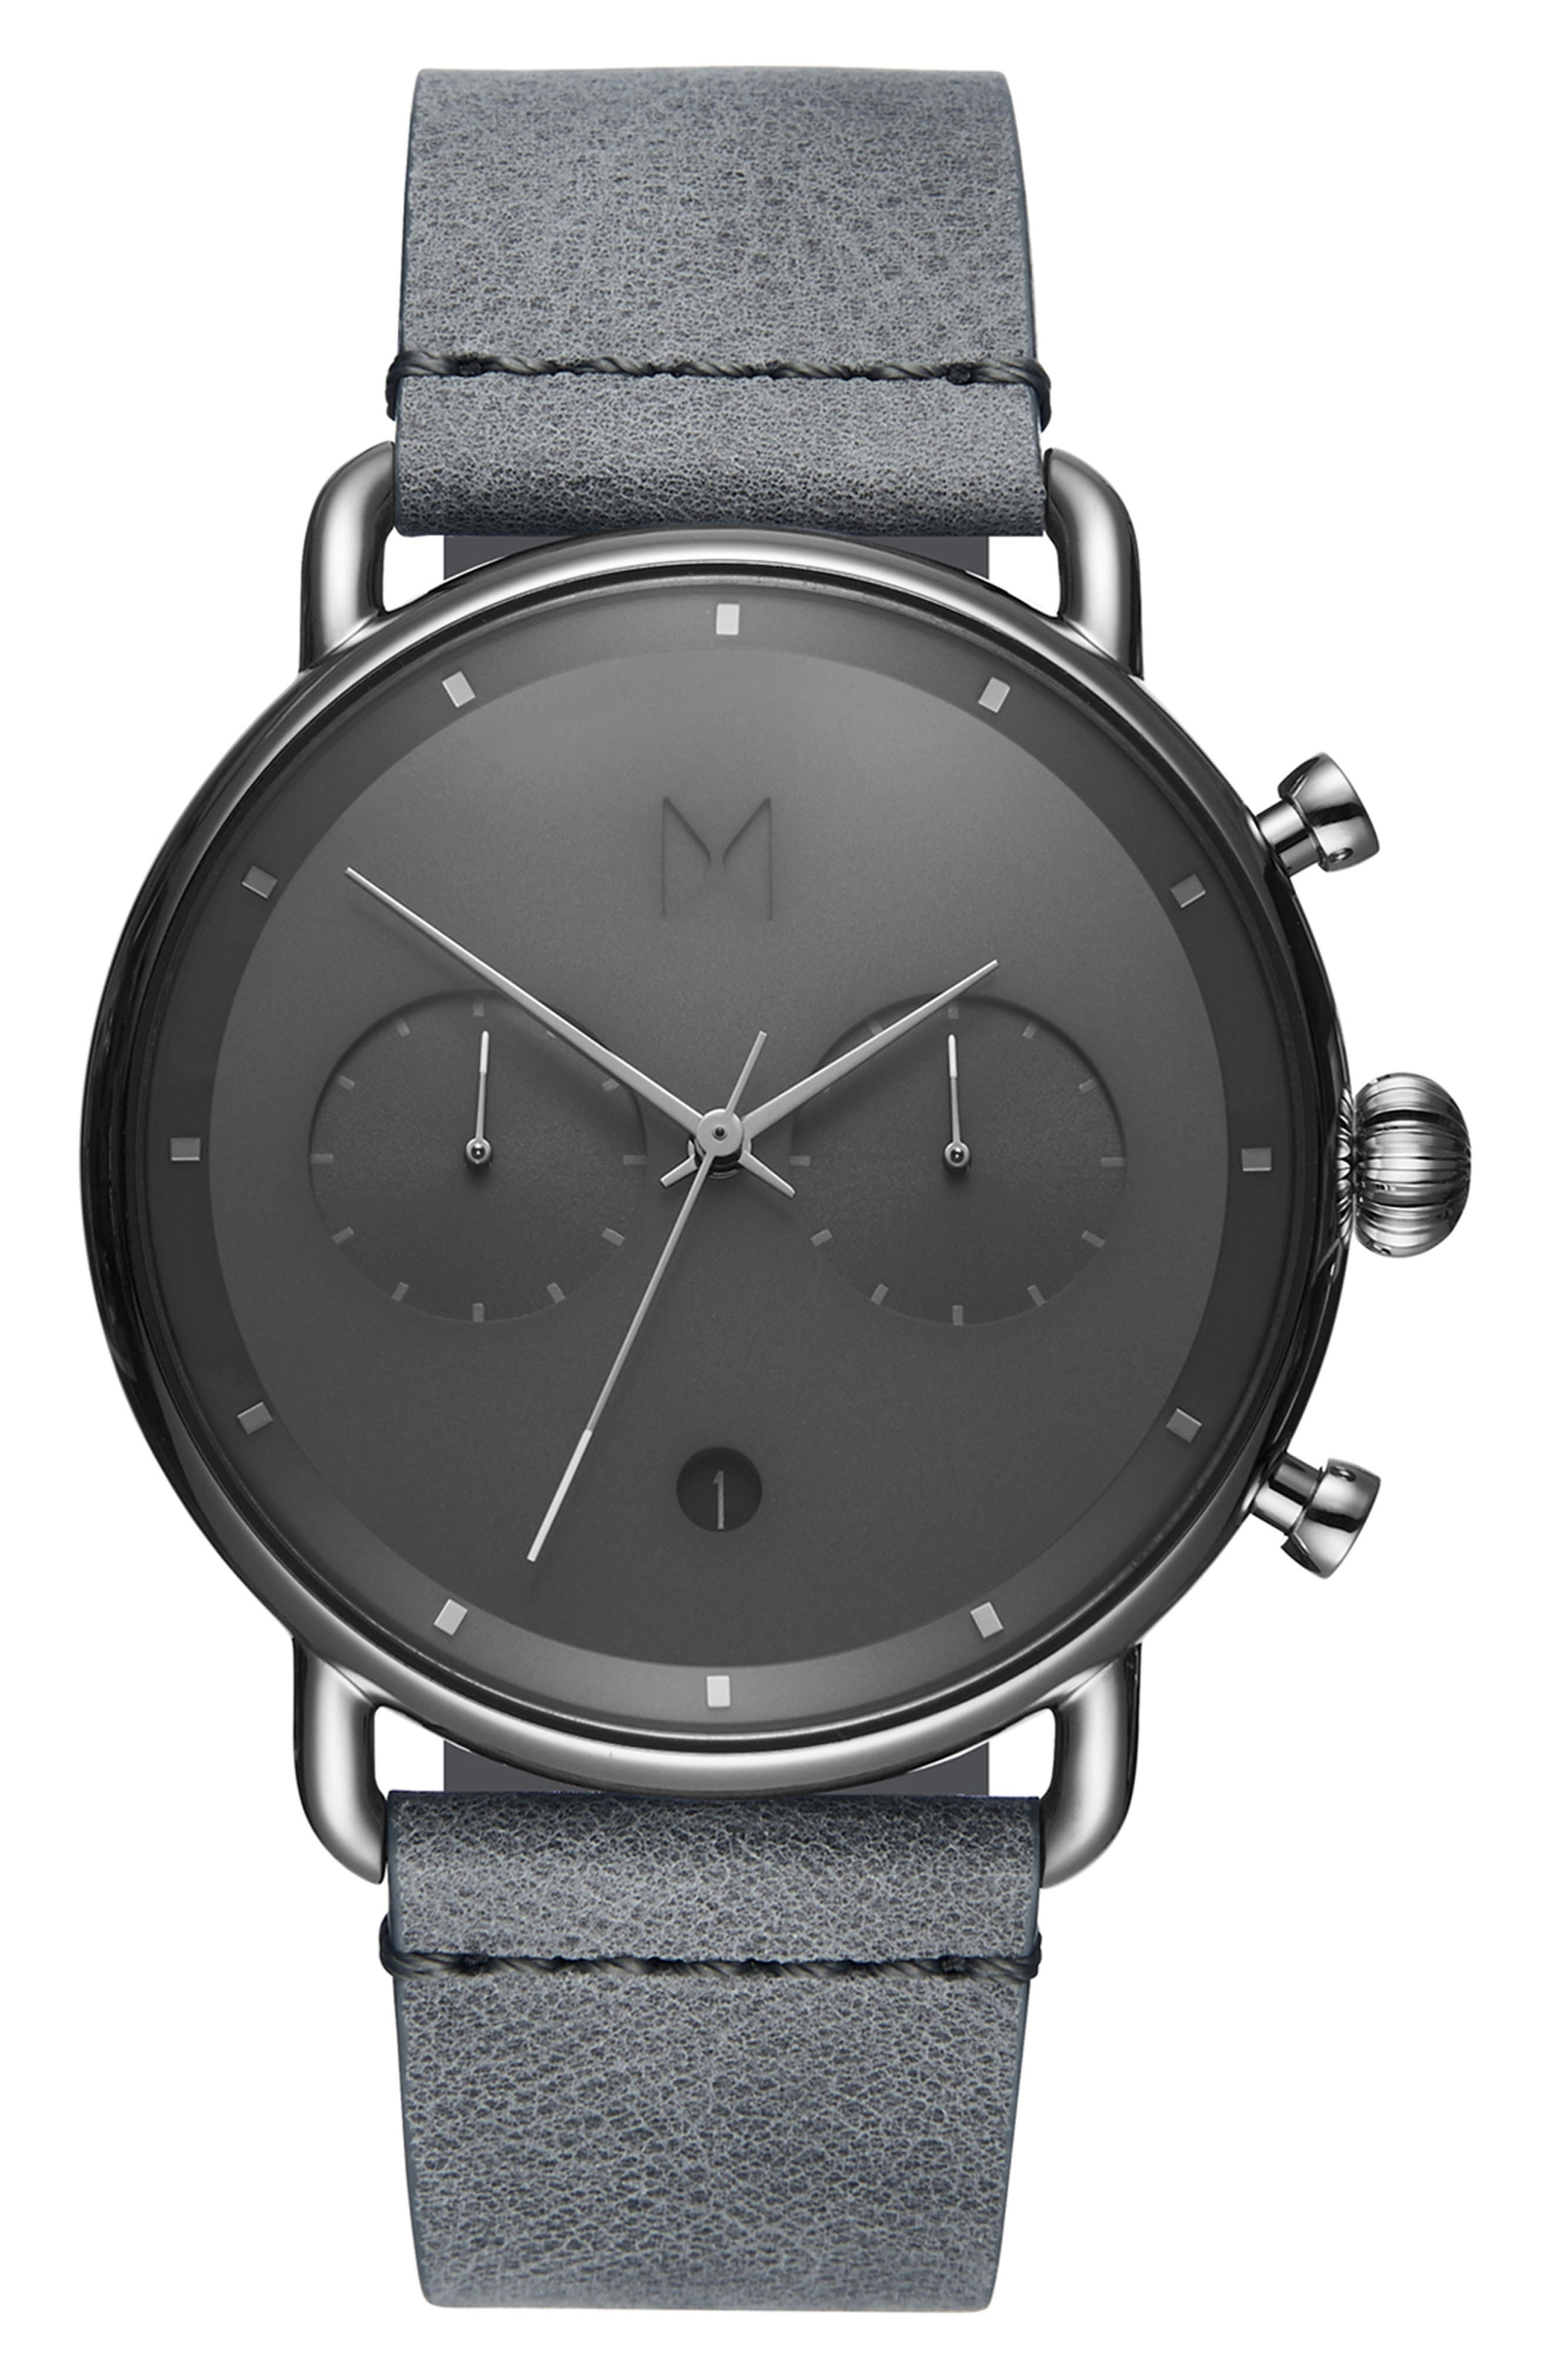 Blacktop Chronograph Leather Strap Watch,                         Main,                         color, GREY/ GREY